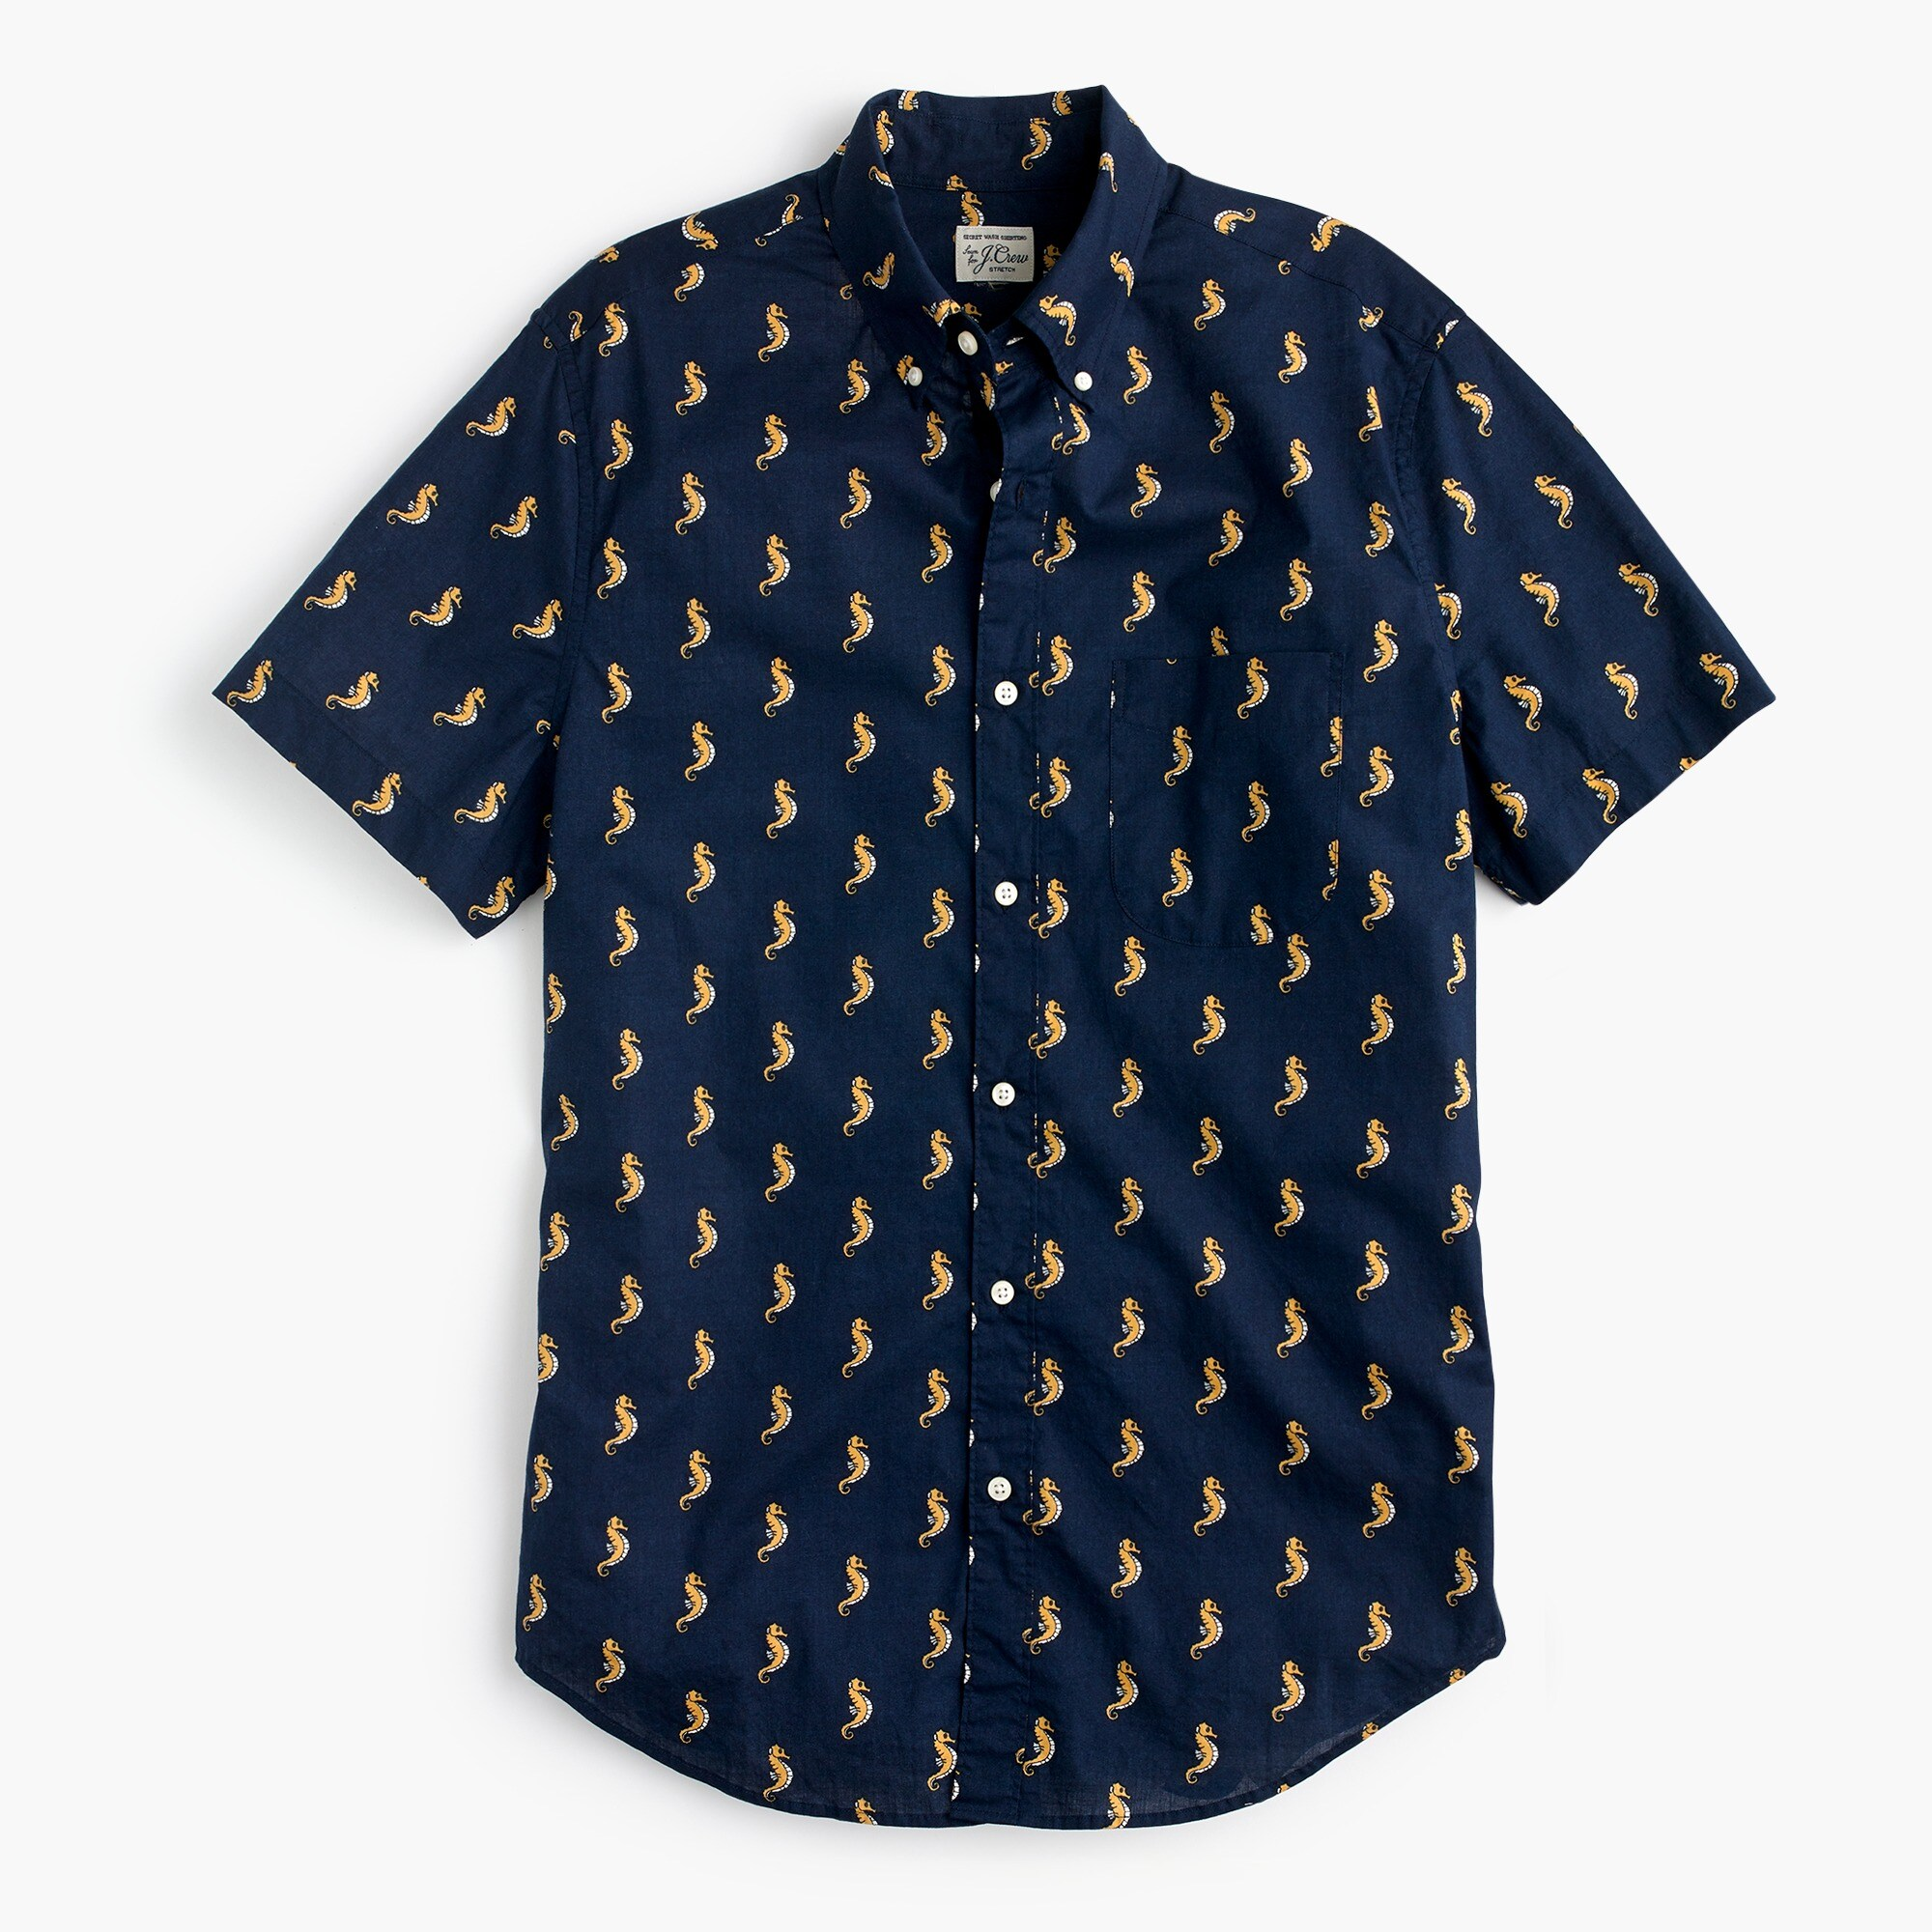 Slim stretch short-sleeve Secret Wash shirt in seahorse print